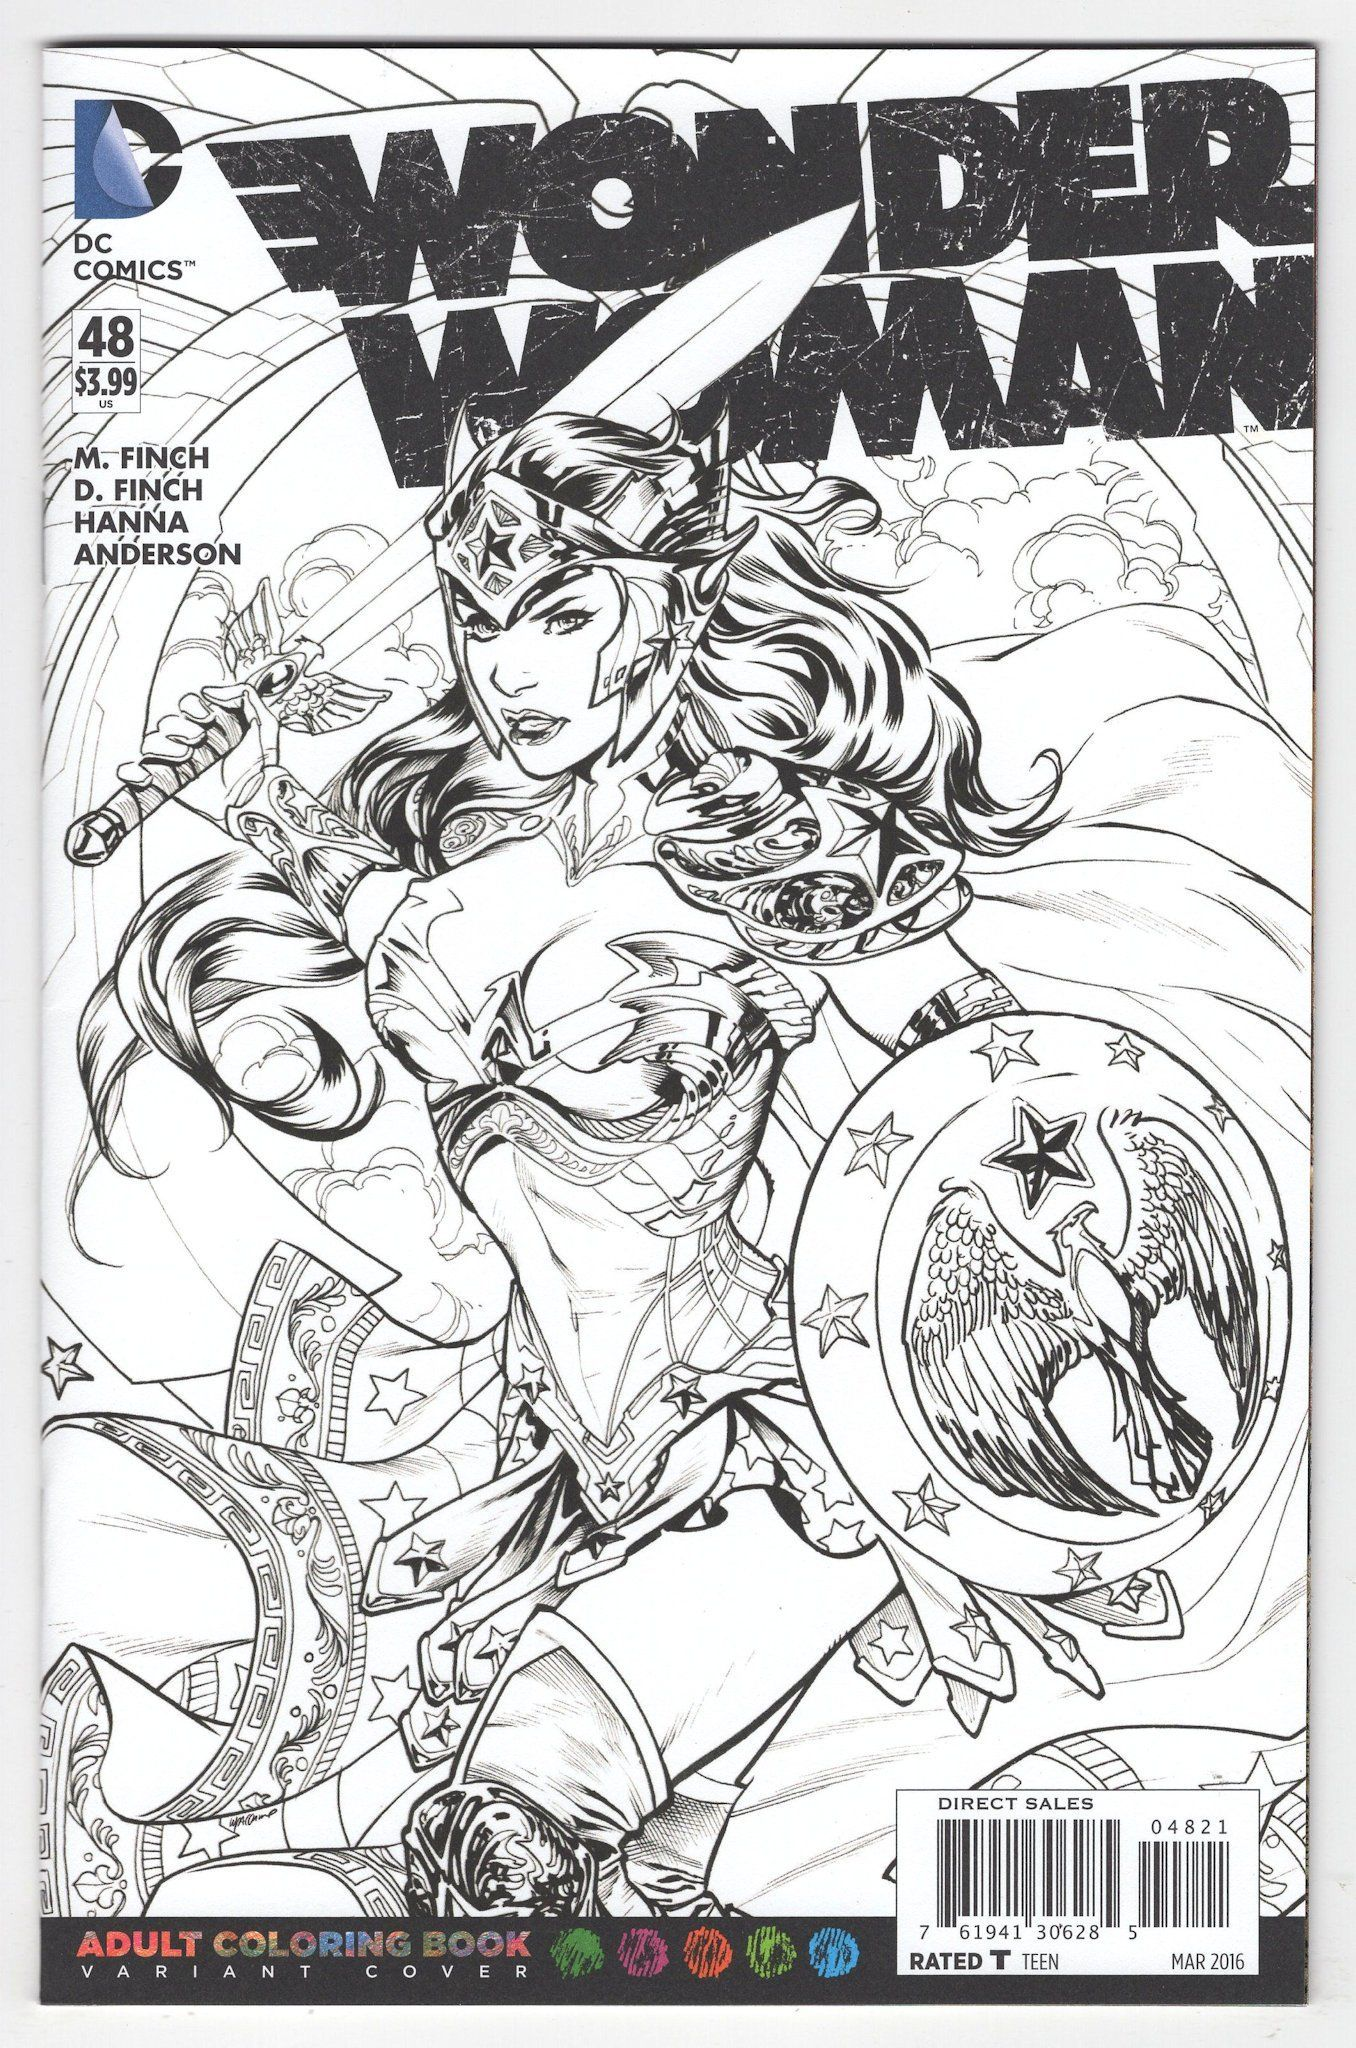 Wonder Woman 48 Emanuela Lupacchino Variant Cover 2016 Superhero Coloring Coloring Books Coloring Pages